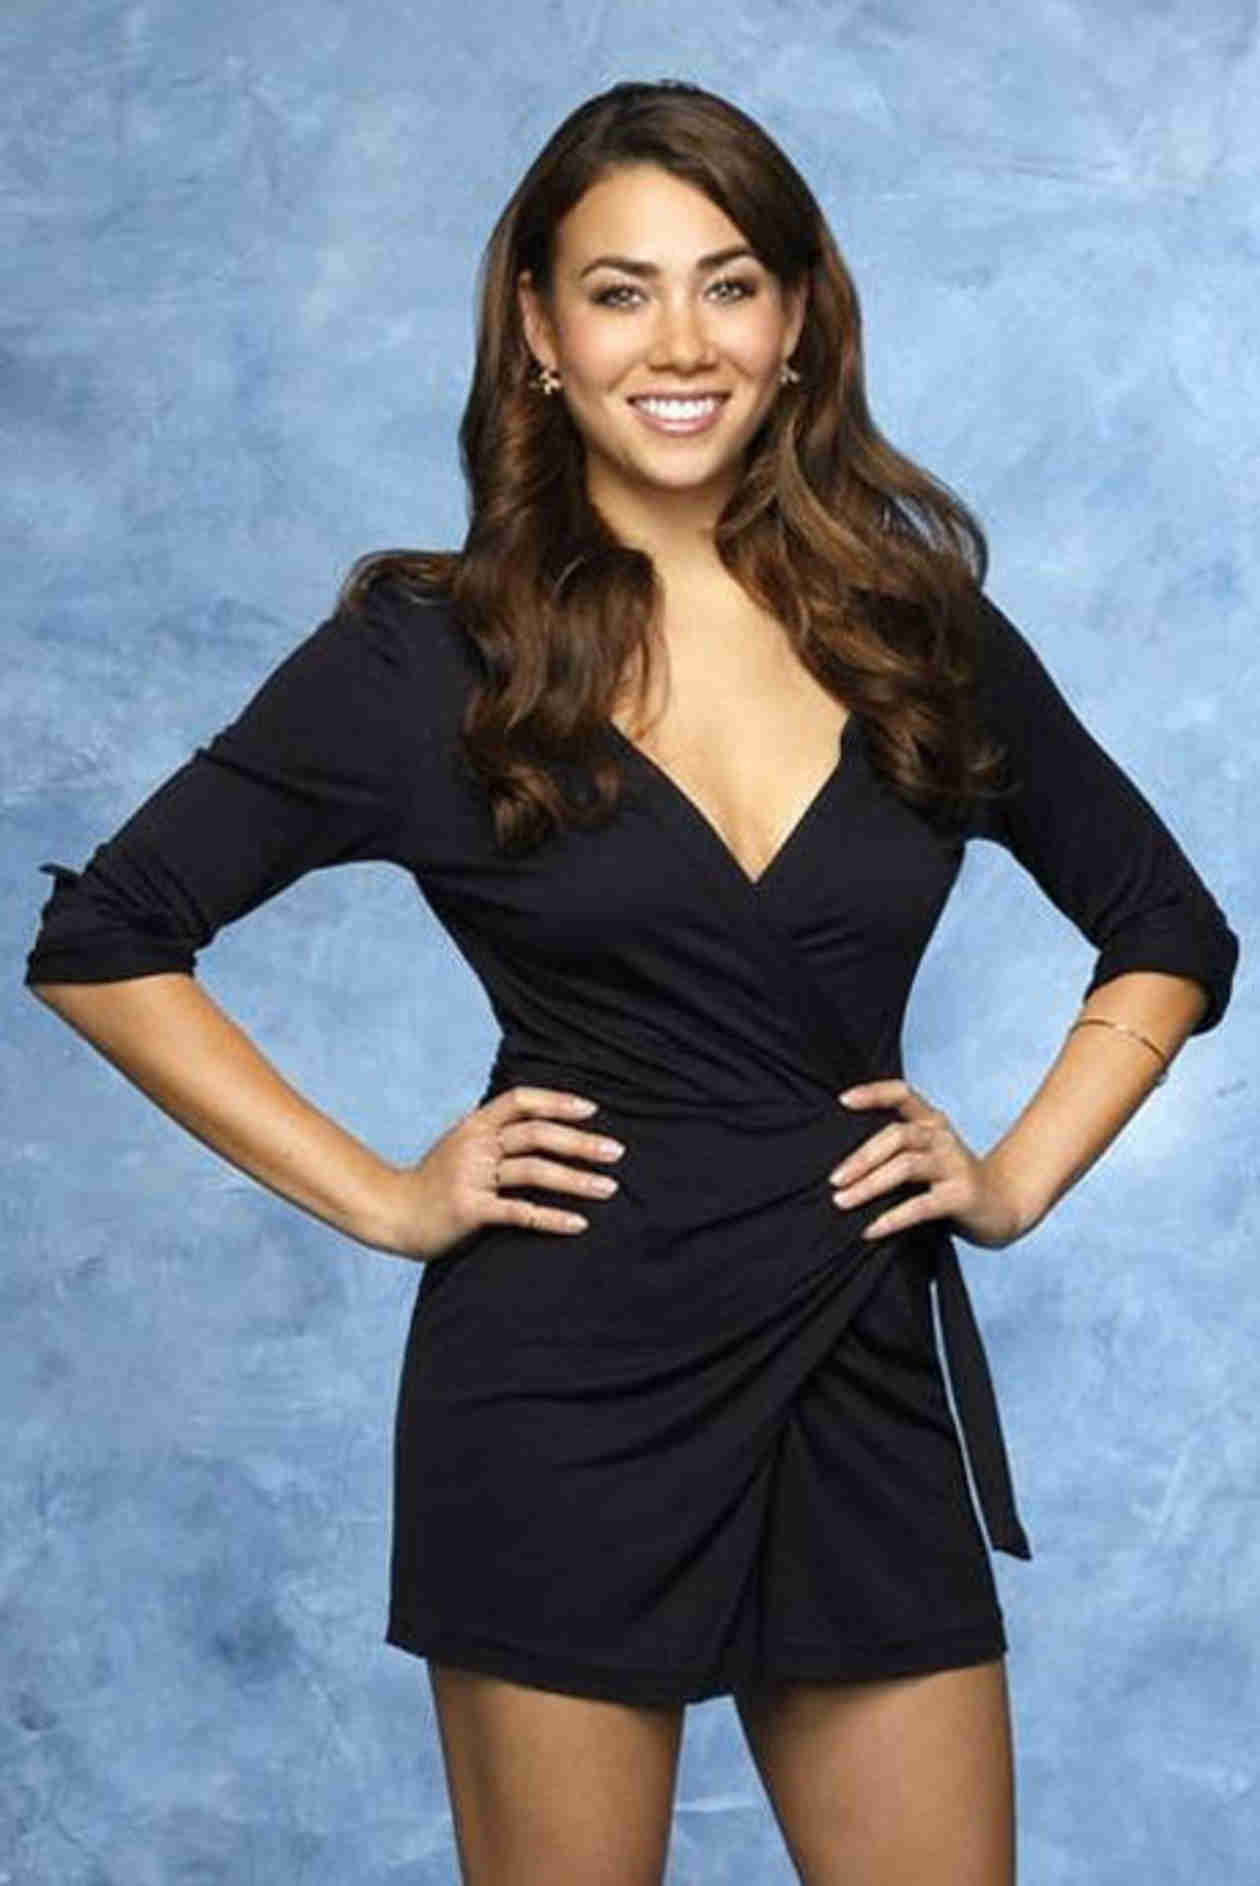 Bachelorette 2014: Sharleen Joynt Says Andi Dorfman Led Nick Viall On